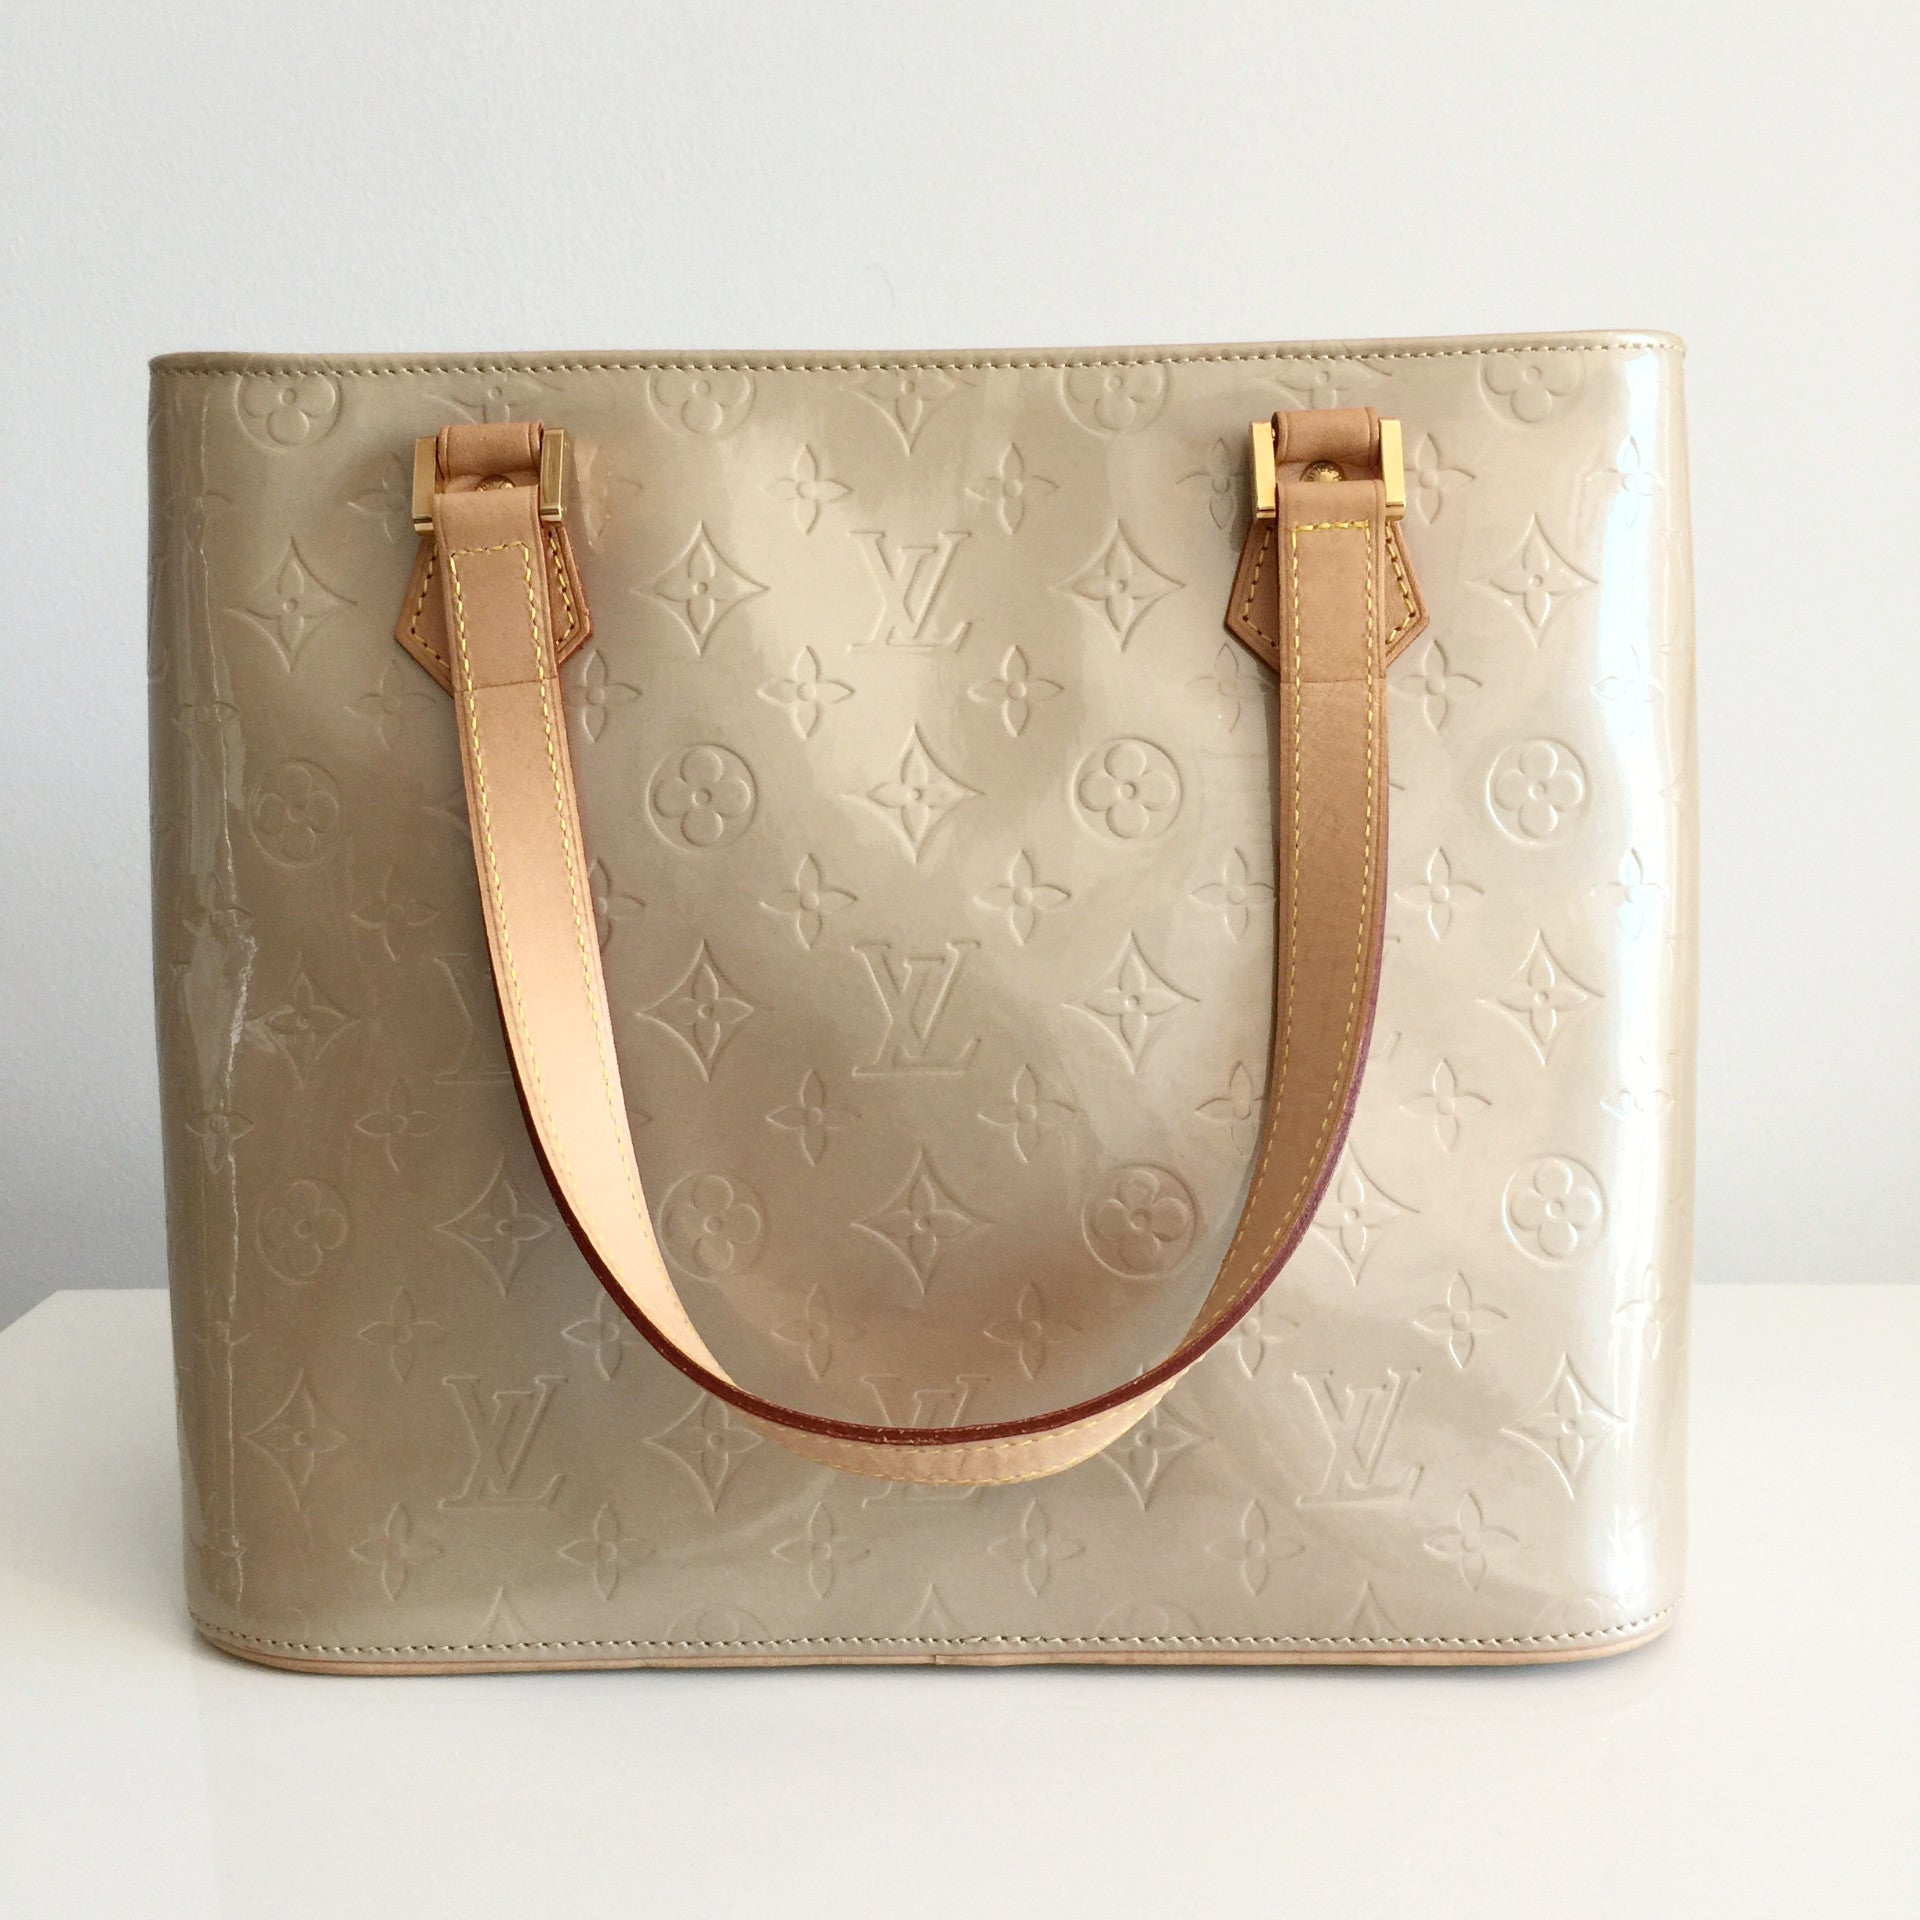 Authentic LOUIS VUITTON Vernis Houston